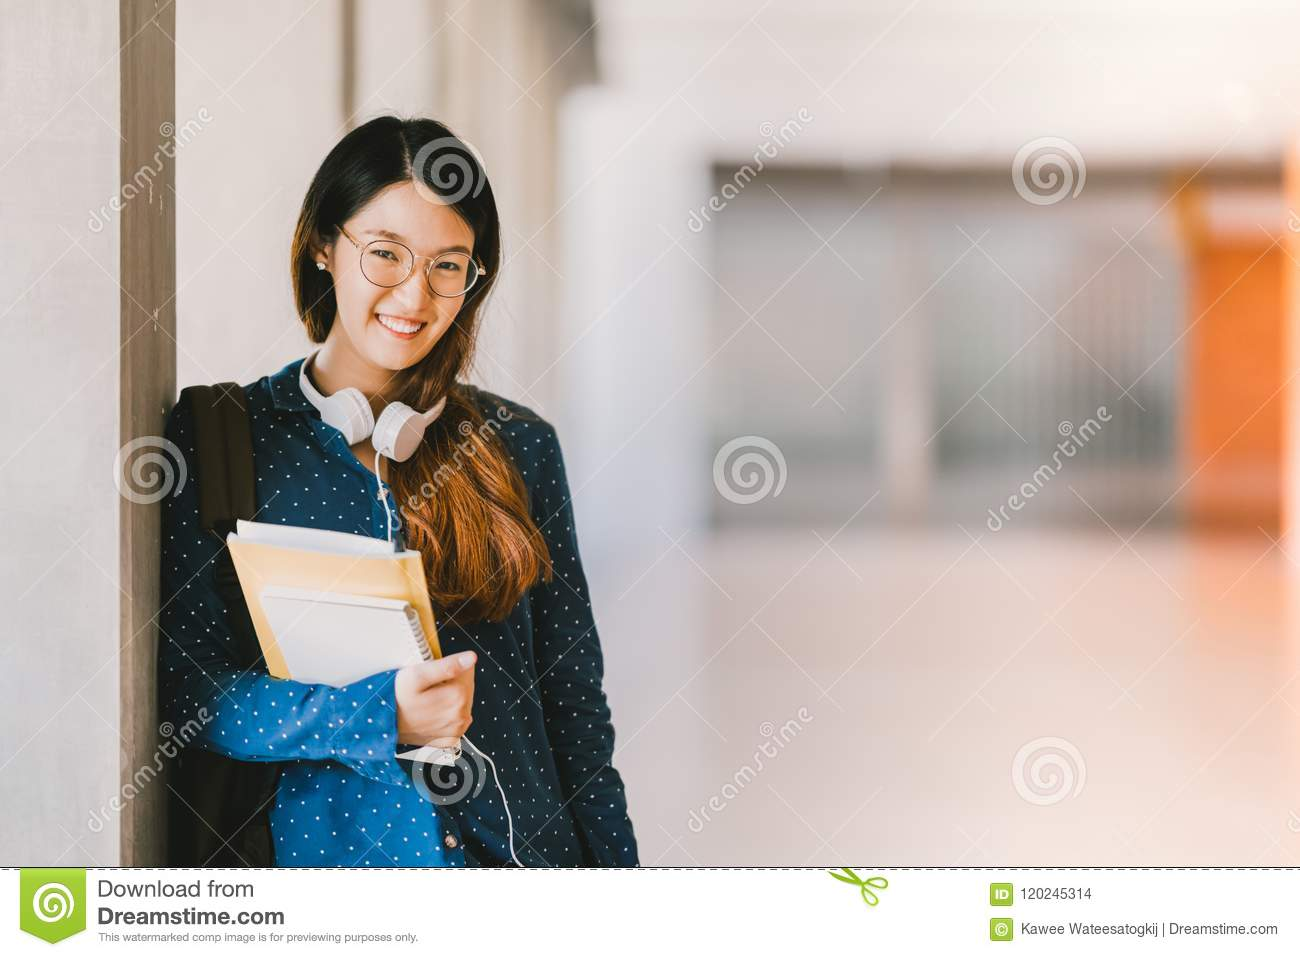 Asian high school girl or college student wearing eyeglasses, smiling in university campus with copy space. Education concept